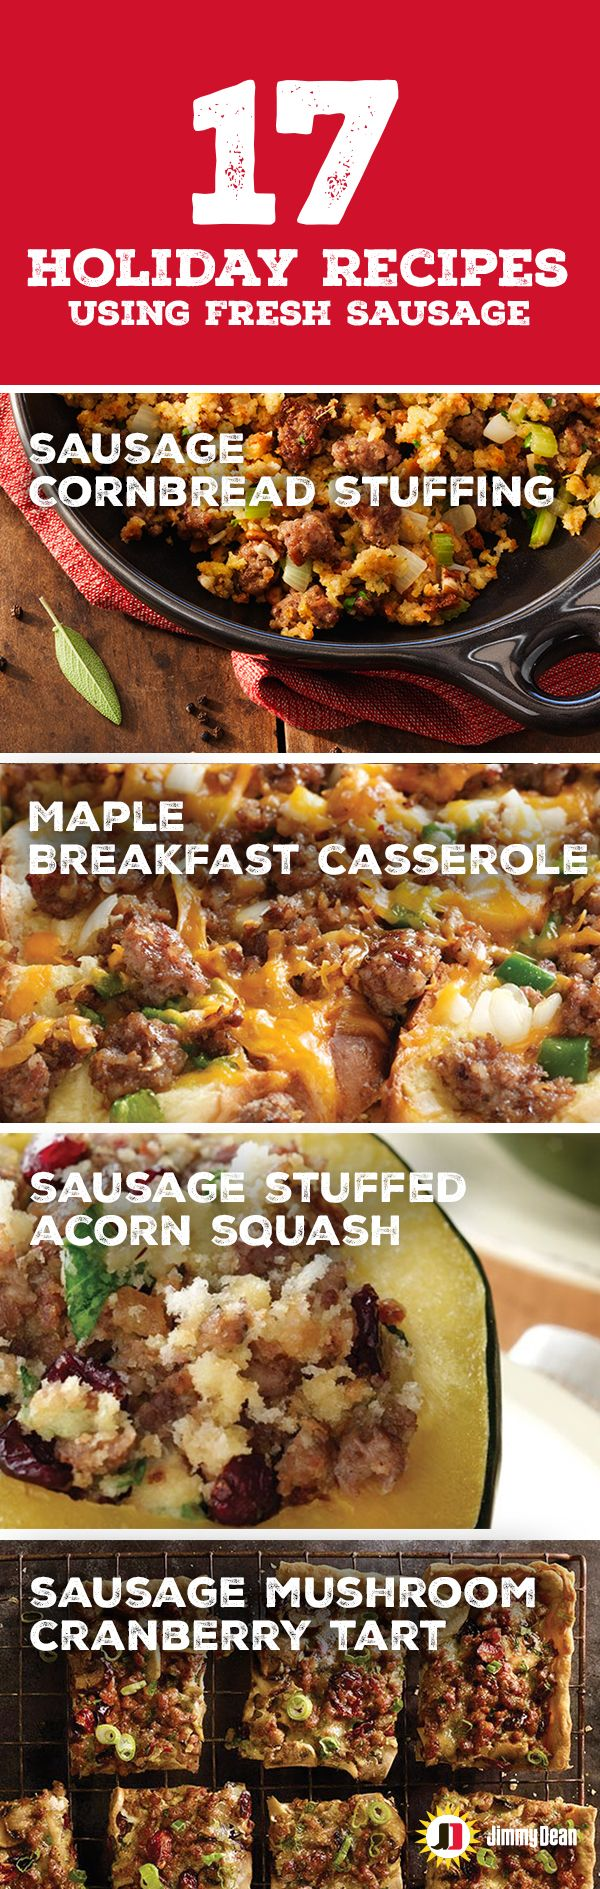 Jimmy Dean fresh Sausage Rolls come in eight flavors. There are almost too many ways to enjoy all our delicious sausage. So we did you a favor and rounded up 17 tasty holiday recipes. If you're looking for something signature seasoned, sweet, spicy, hot or savory we've got a sausage recipe to fulfill all of your guests requests.